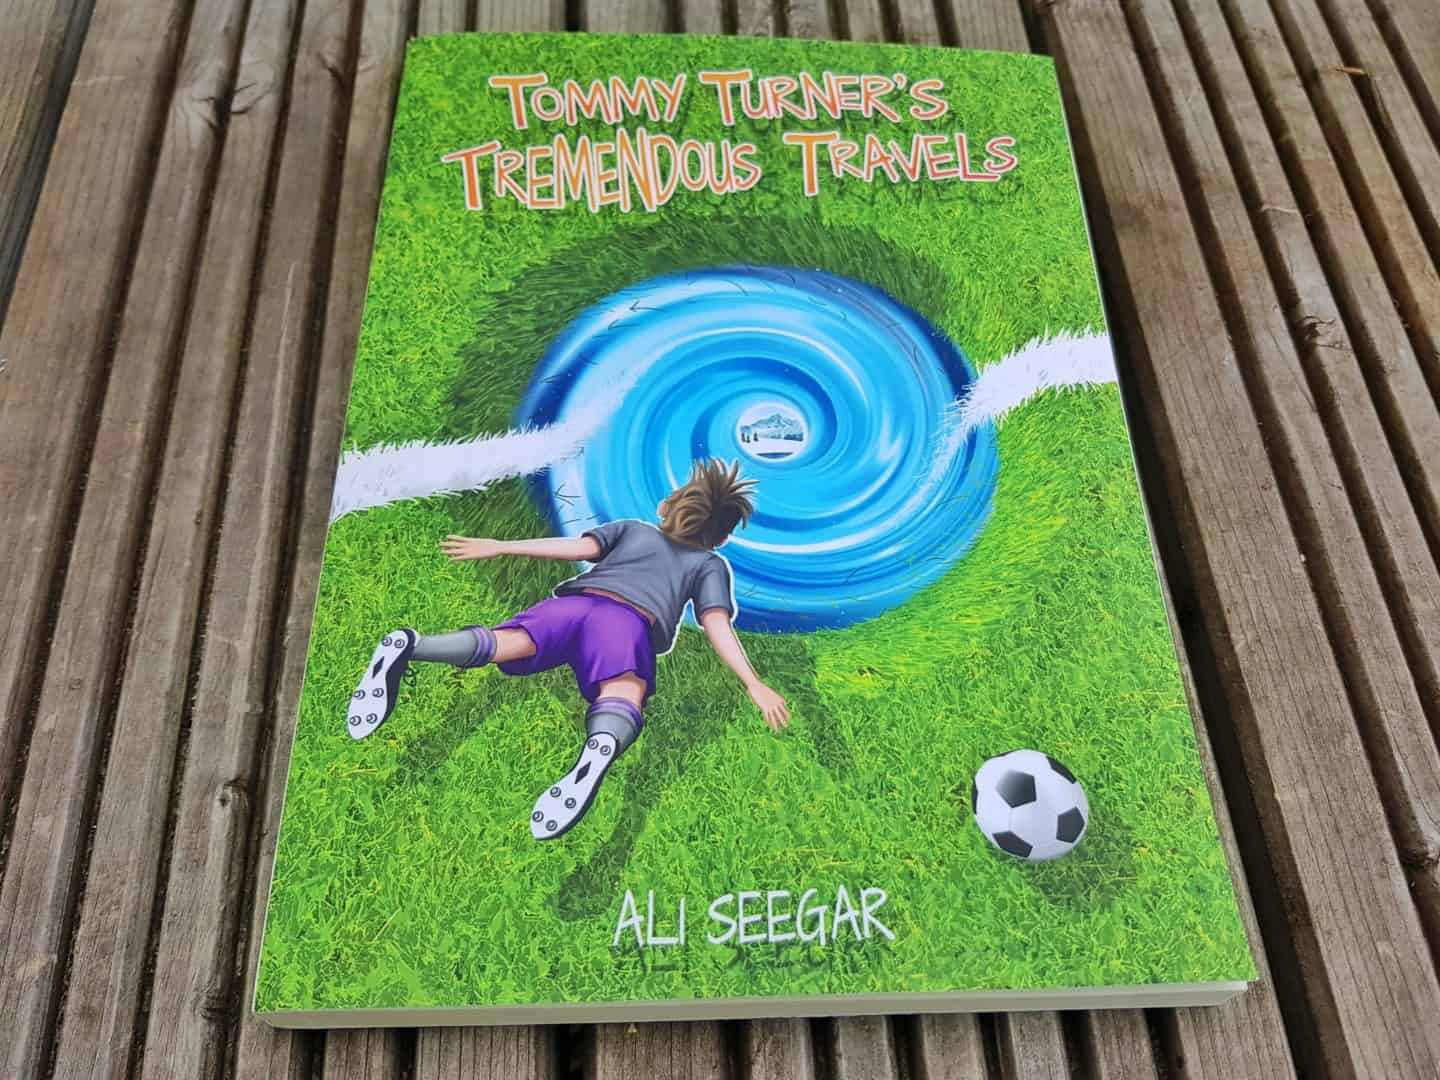 children's book Tommy Turner's Tremendous Travels